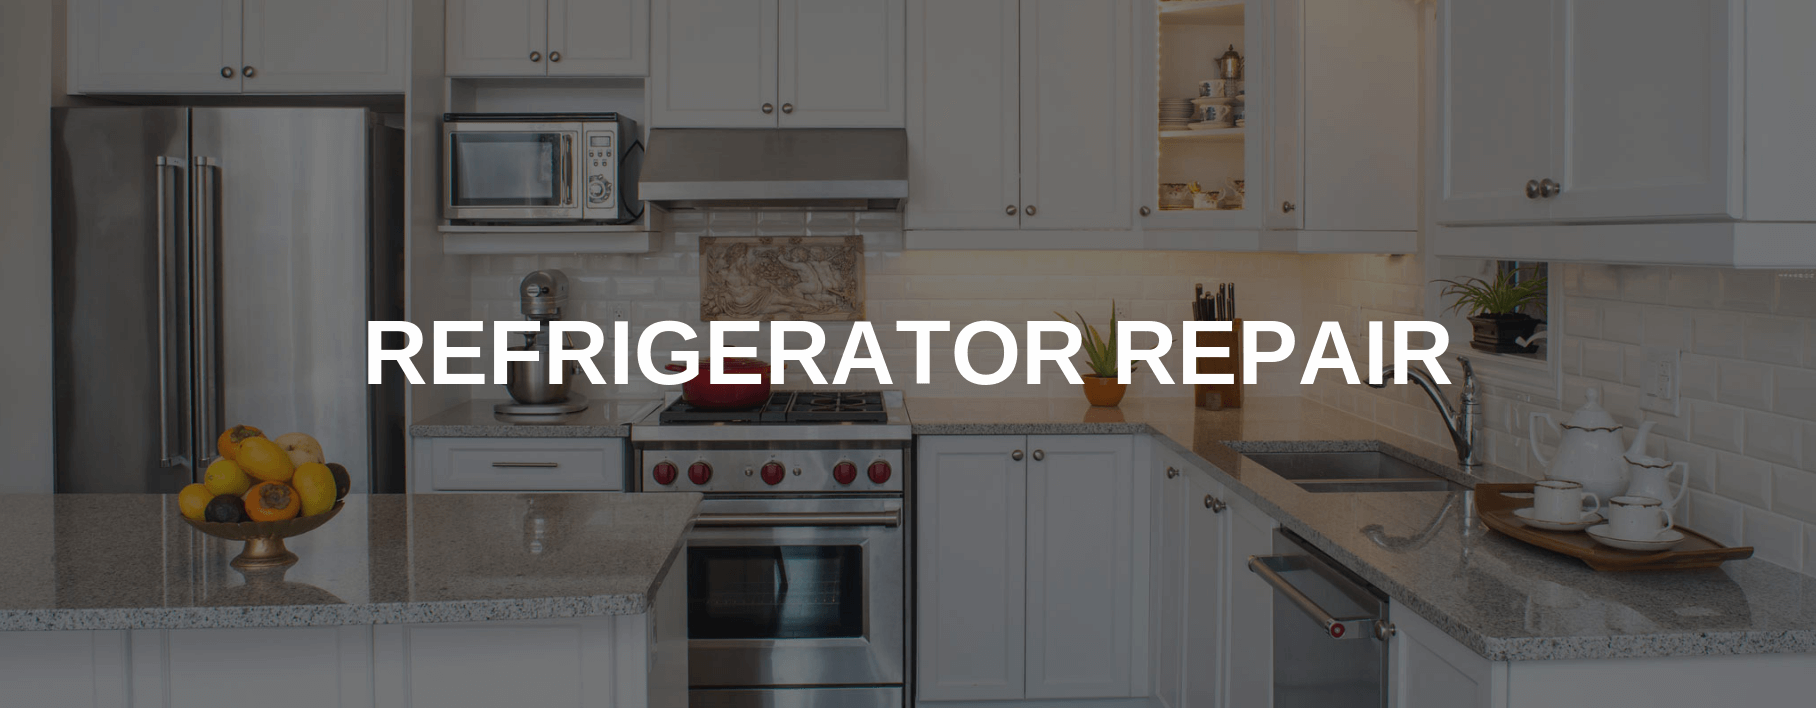 refrigerator repair st louis